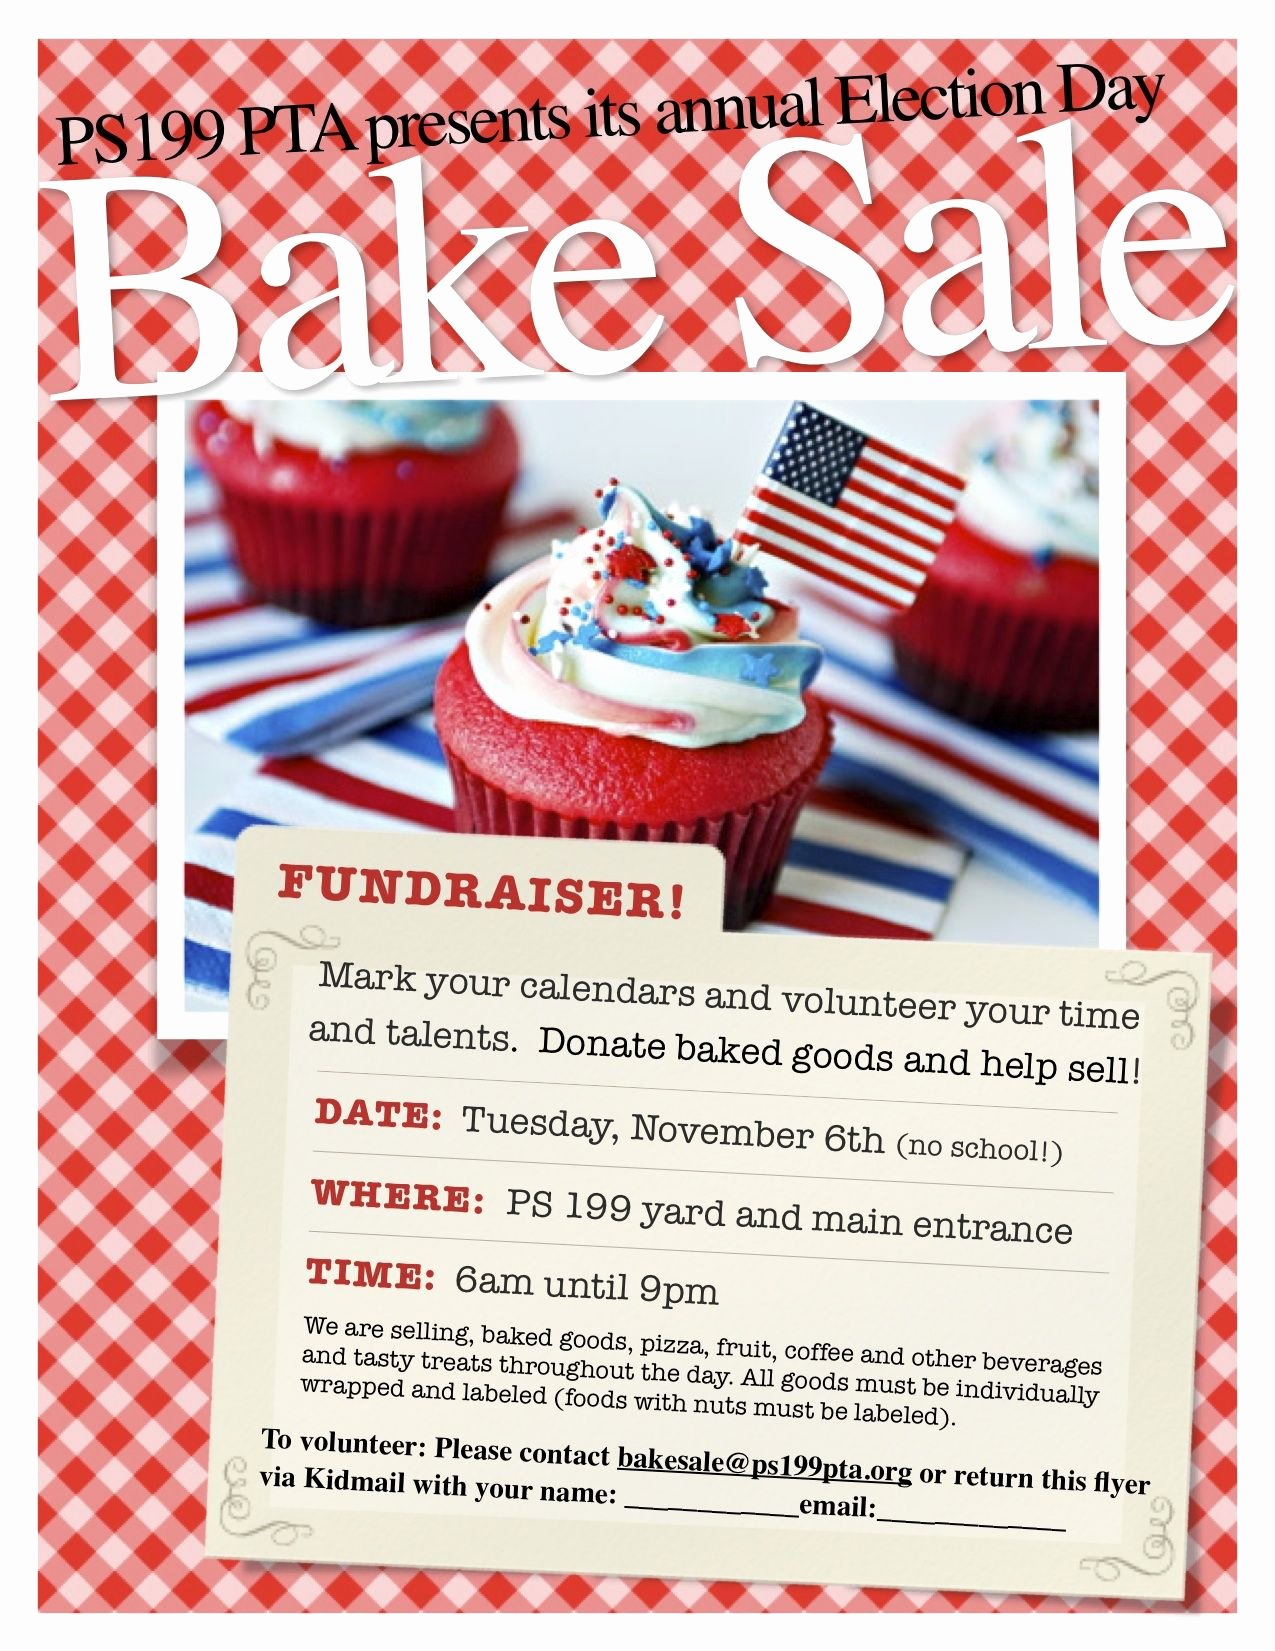 Bake Sale Flyer Wording Fresh Bake Sale Flyer Google Search Bake Sale